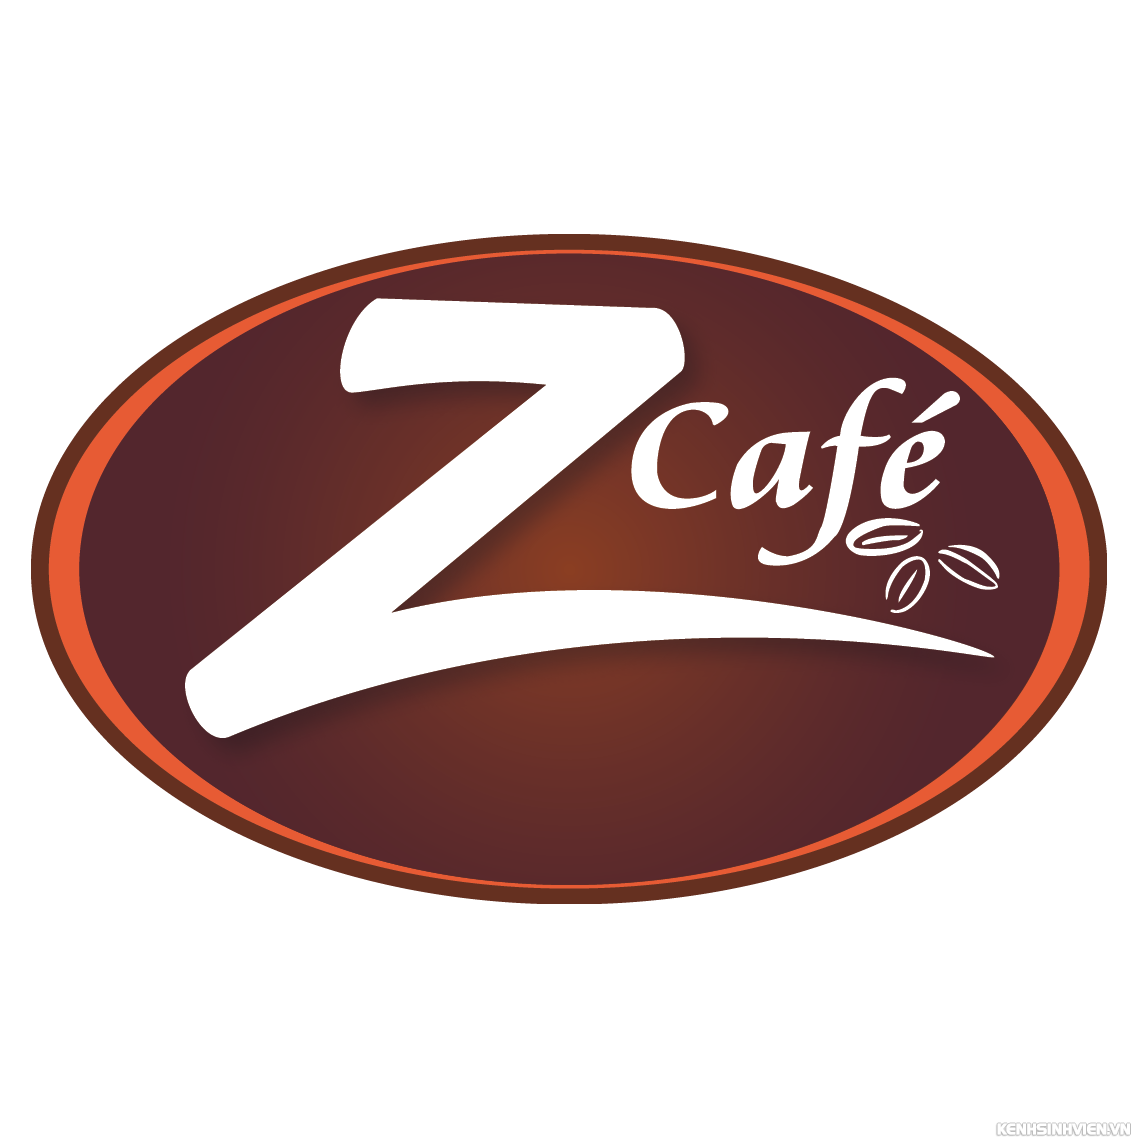 zcafe-1.png